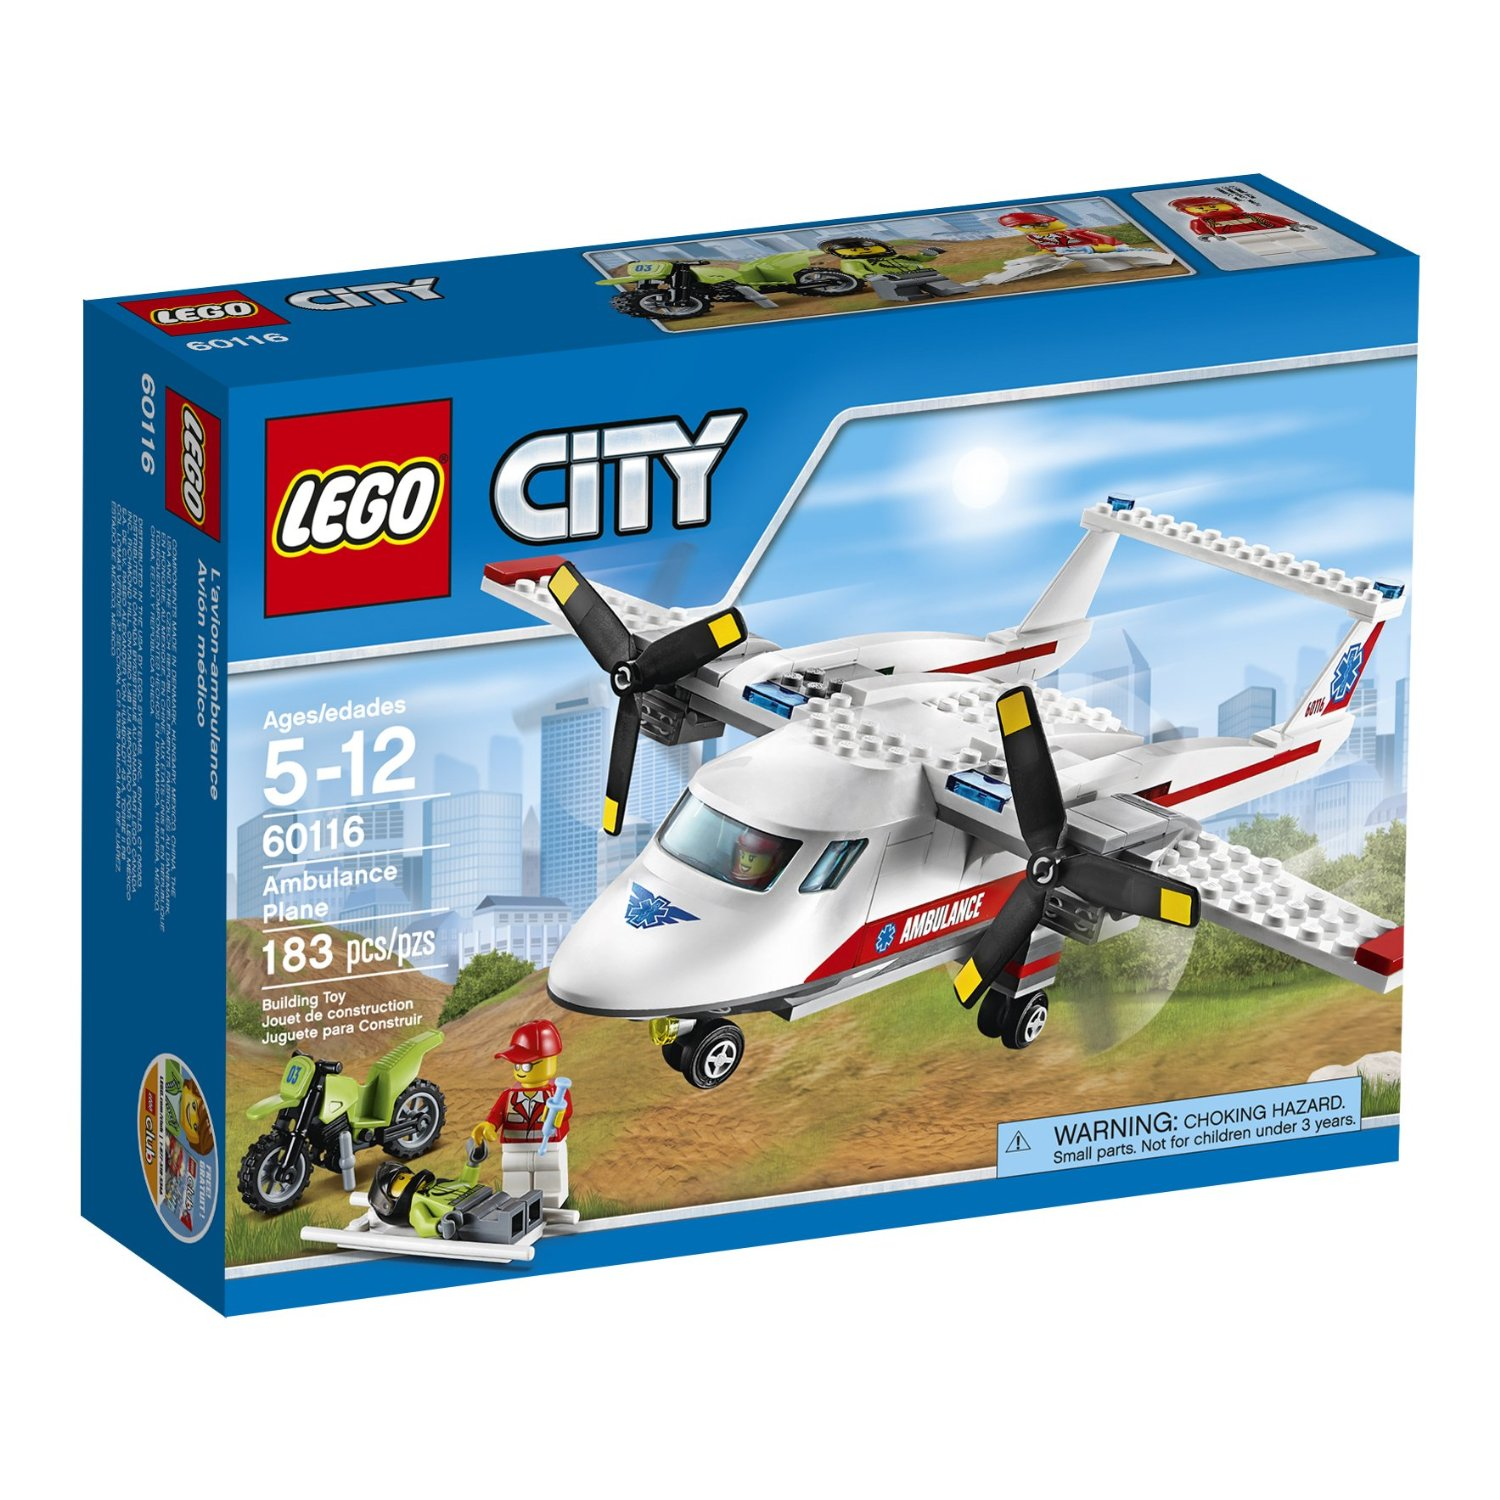 Lego 60116 City Ambulance Plane